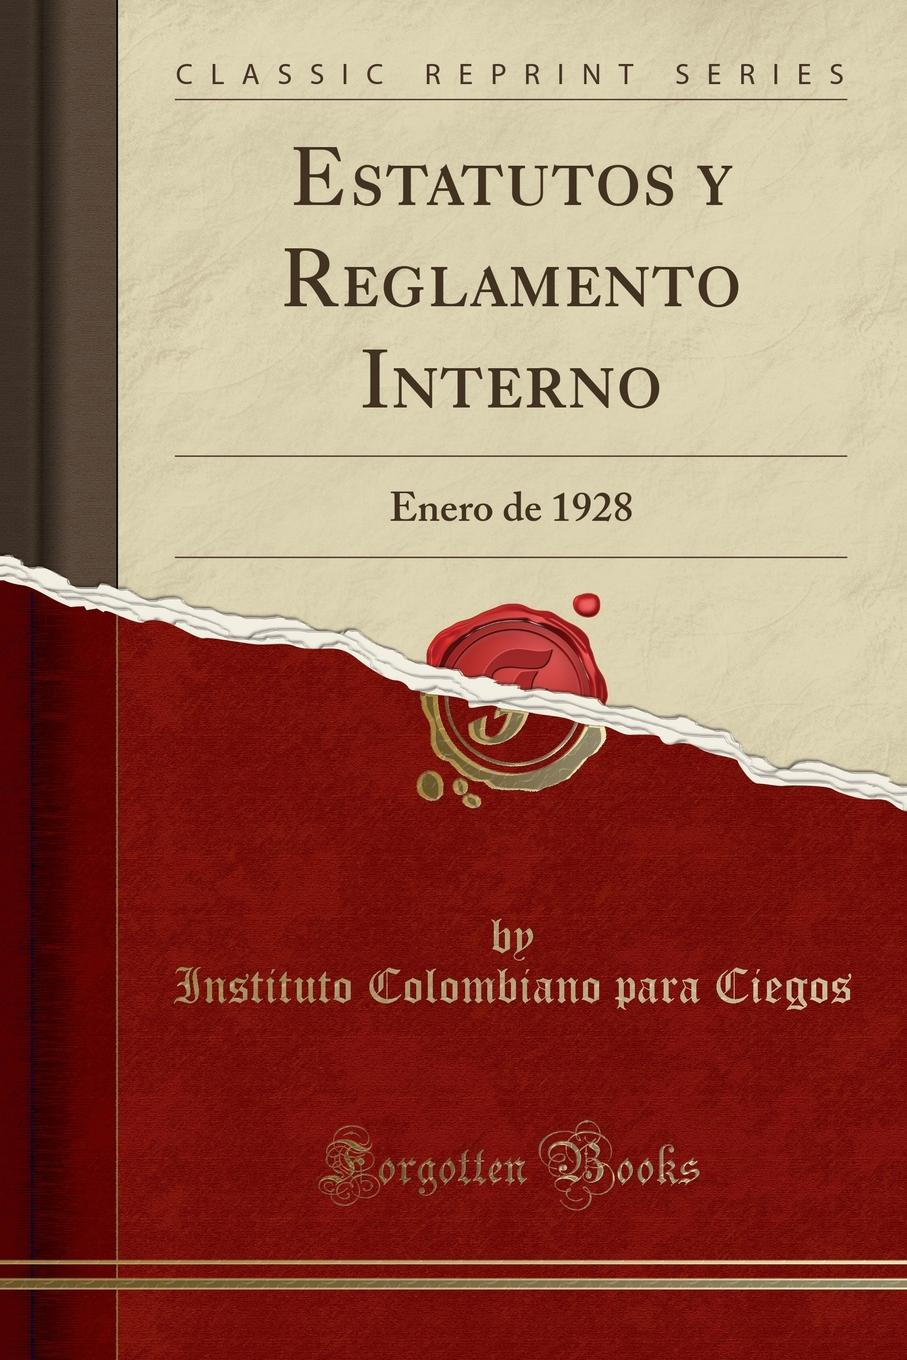 Instituto Colombiano para Ciegos Estatutos y Reglamento Interno. Enero de 1928 (Classic Reprint)